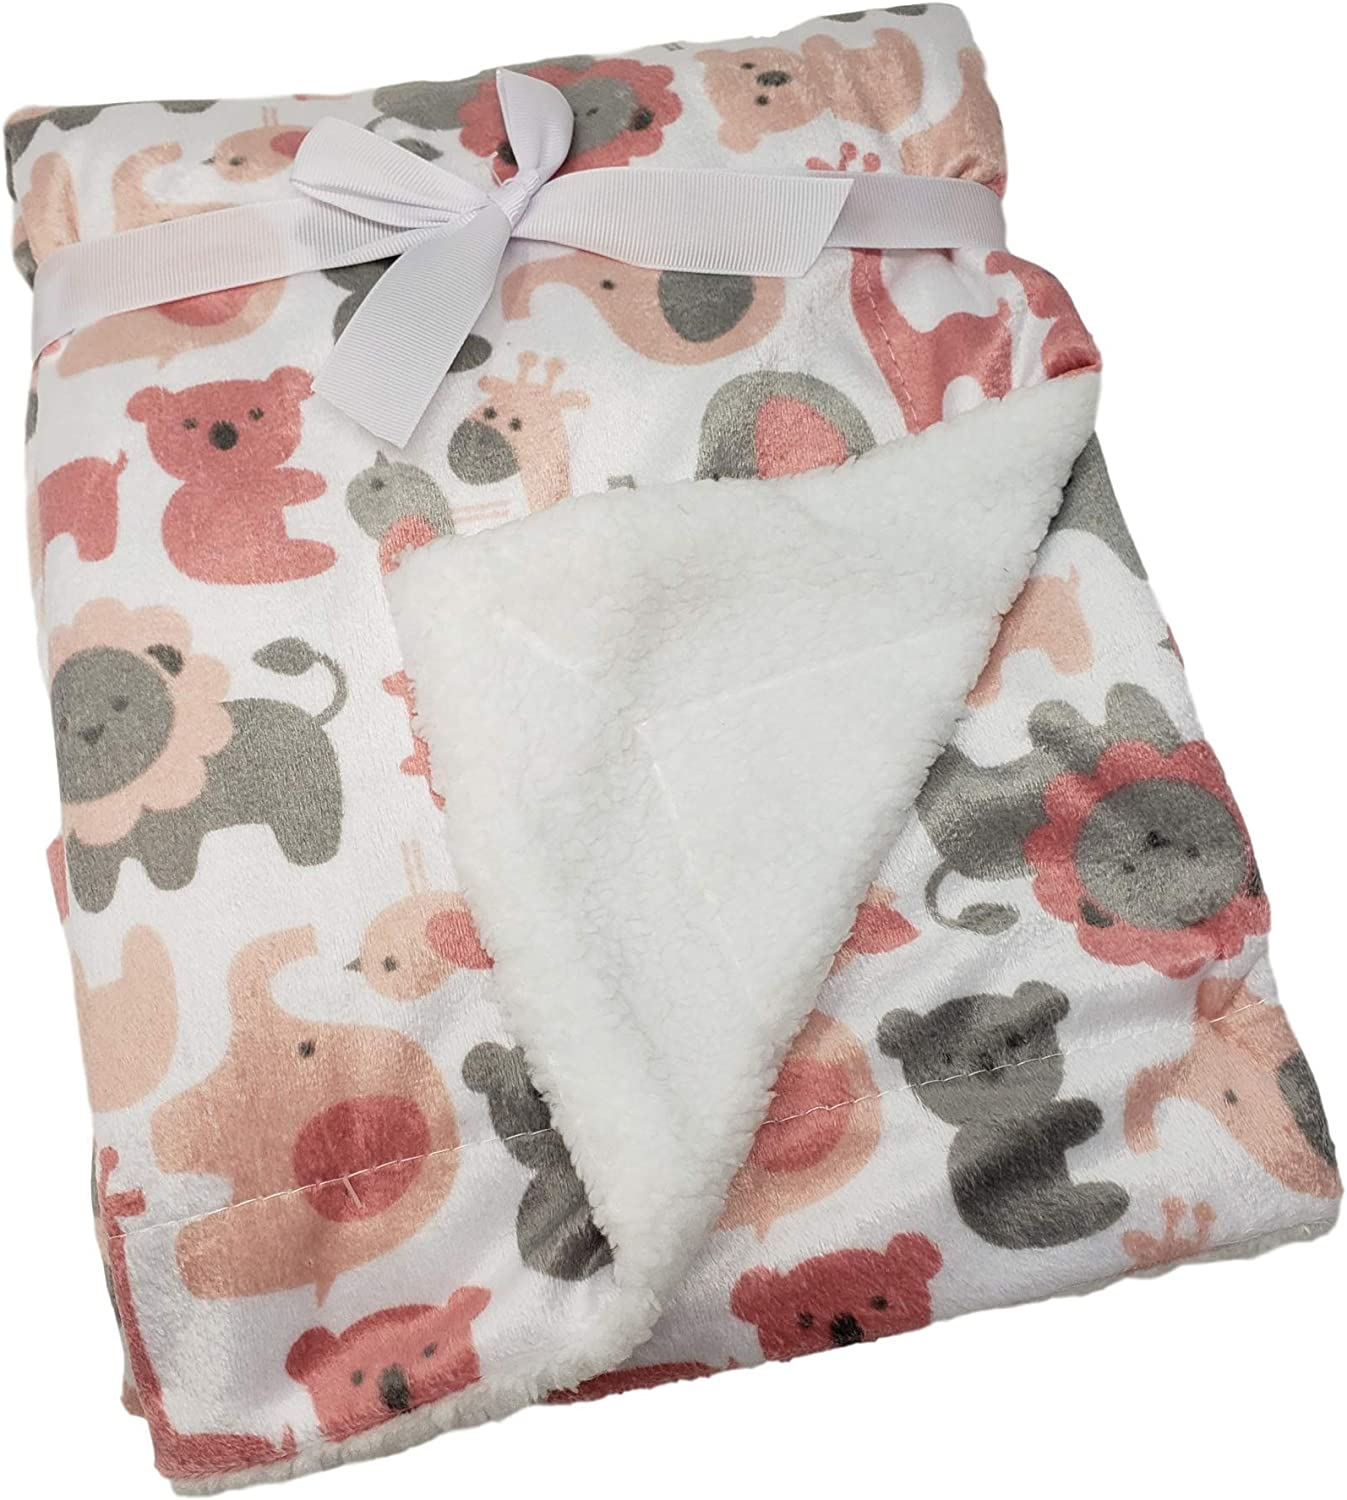 Minky Blanket Cotton Baby Blanket Infant size Small Baby Blanket Nursery Travel Size Soft Dimple Dot Baby Shower Gift